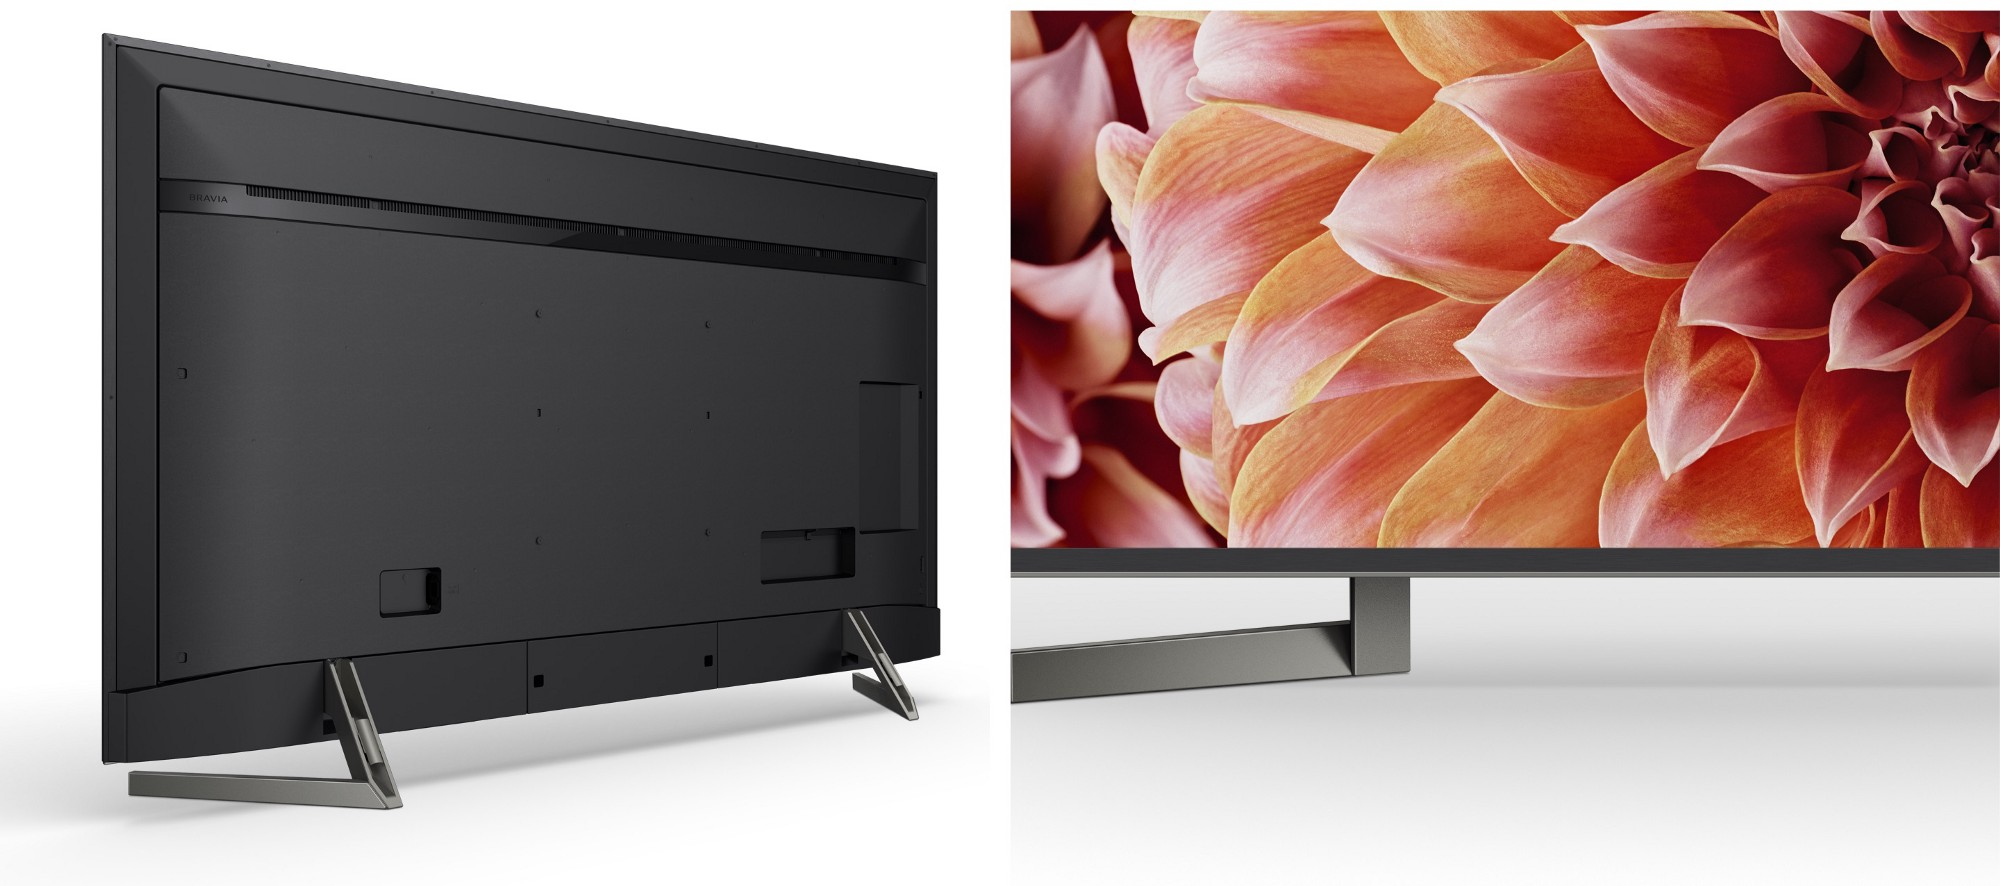 Mid Range Sony X900f 4k Tvs With Dolby Vision Get Priced